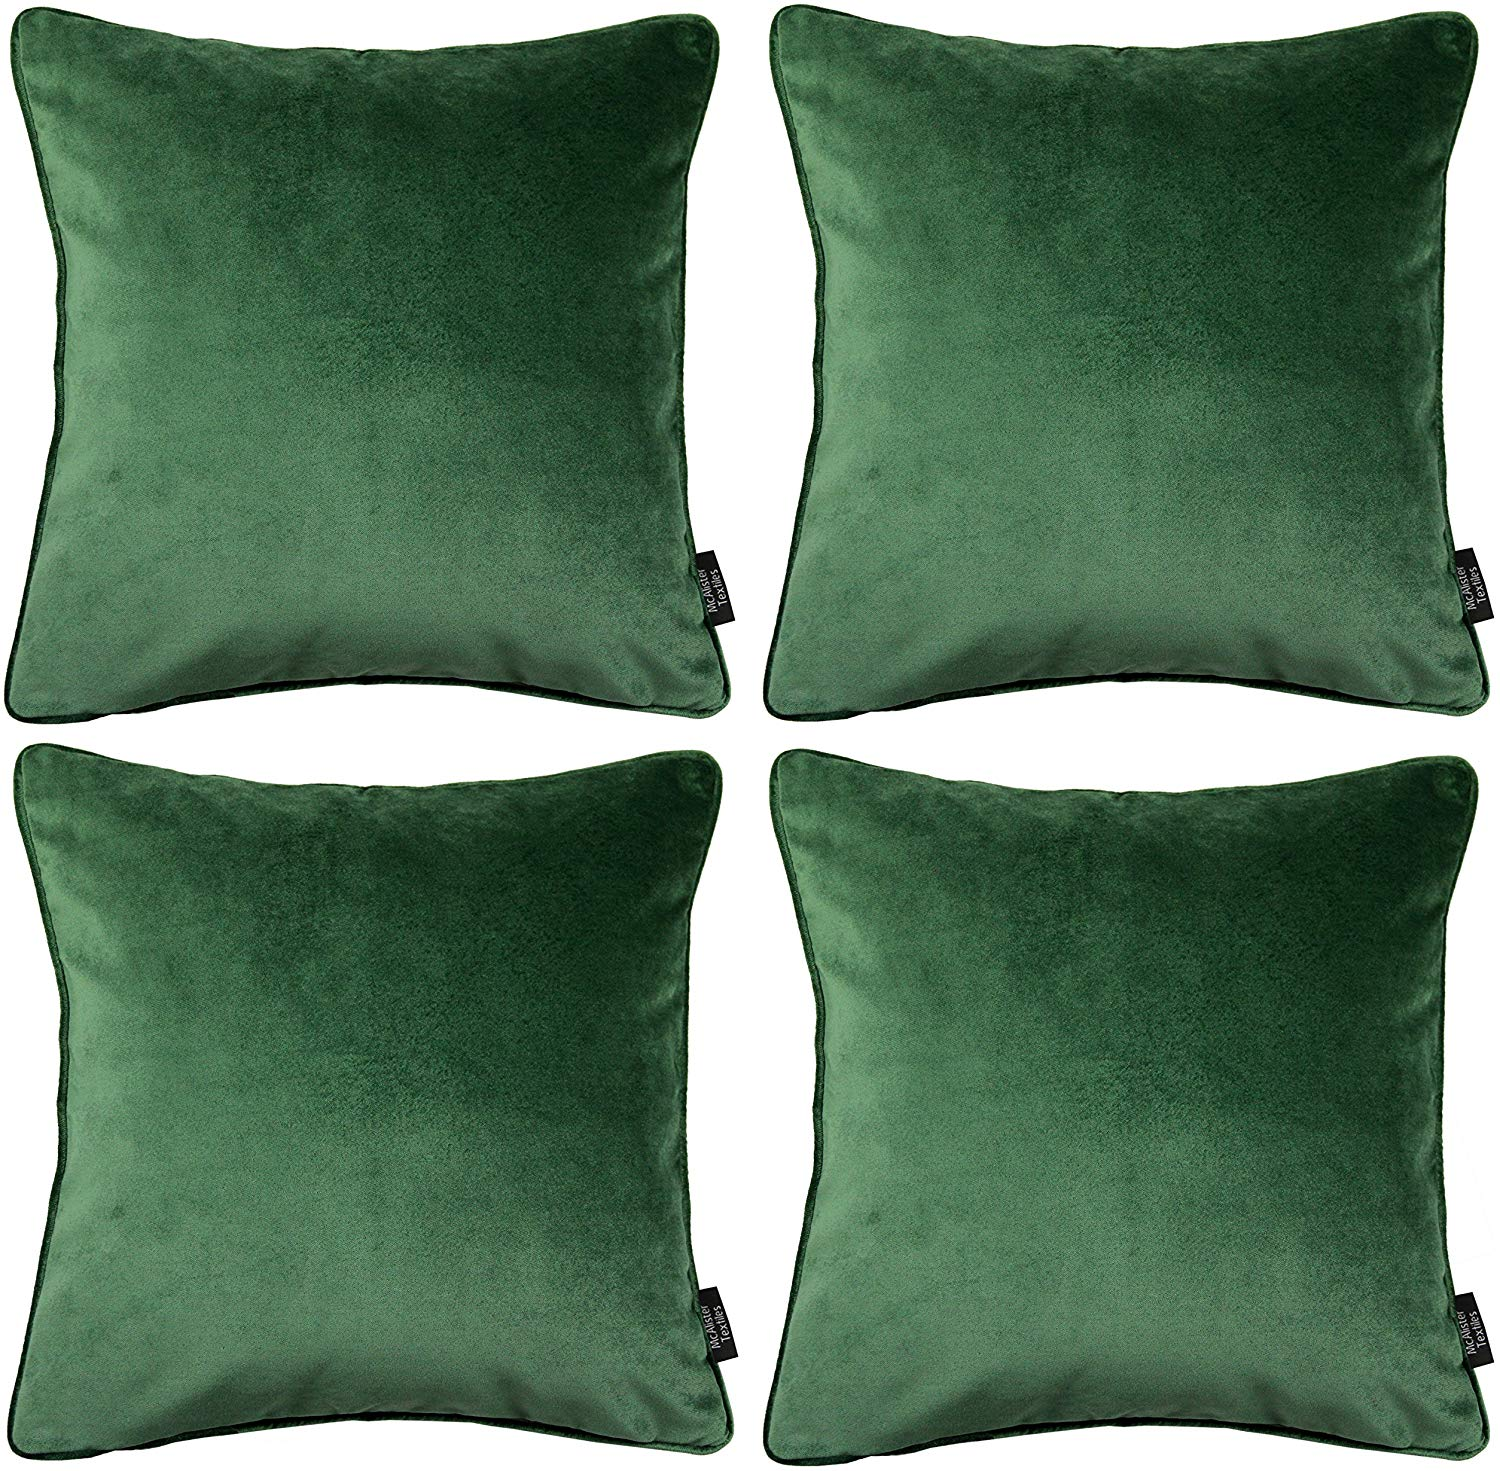 McAlister Textiles Matt Moss Green Velvet 43cm x 43cm Cushion Sets Cushions and Covers Cushion Covers Set of 4